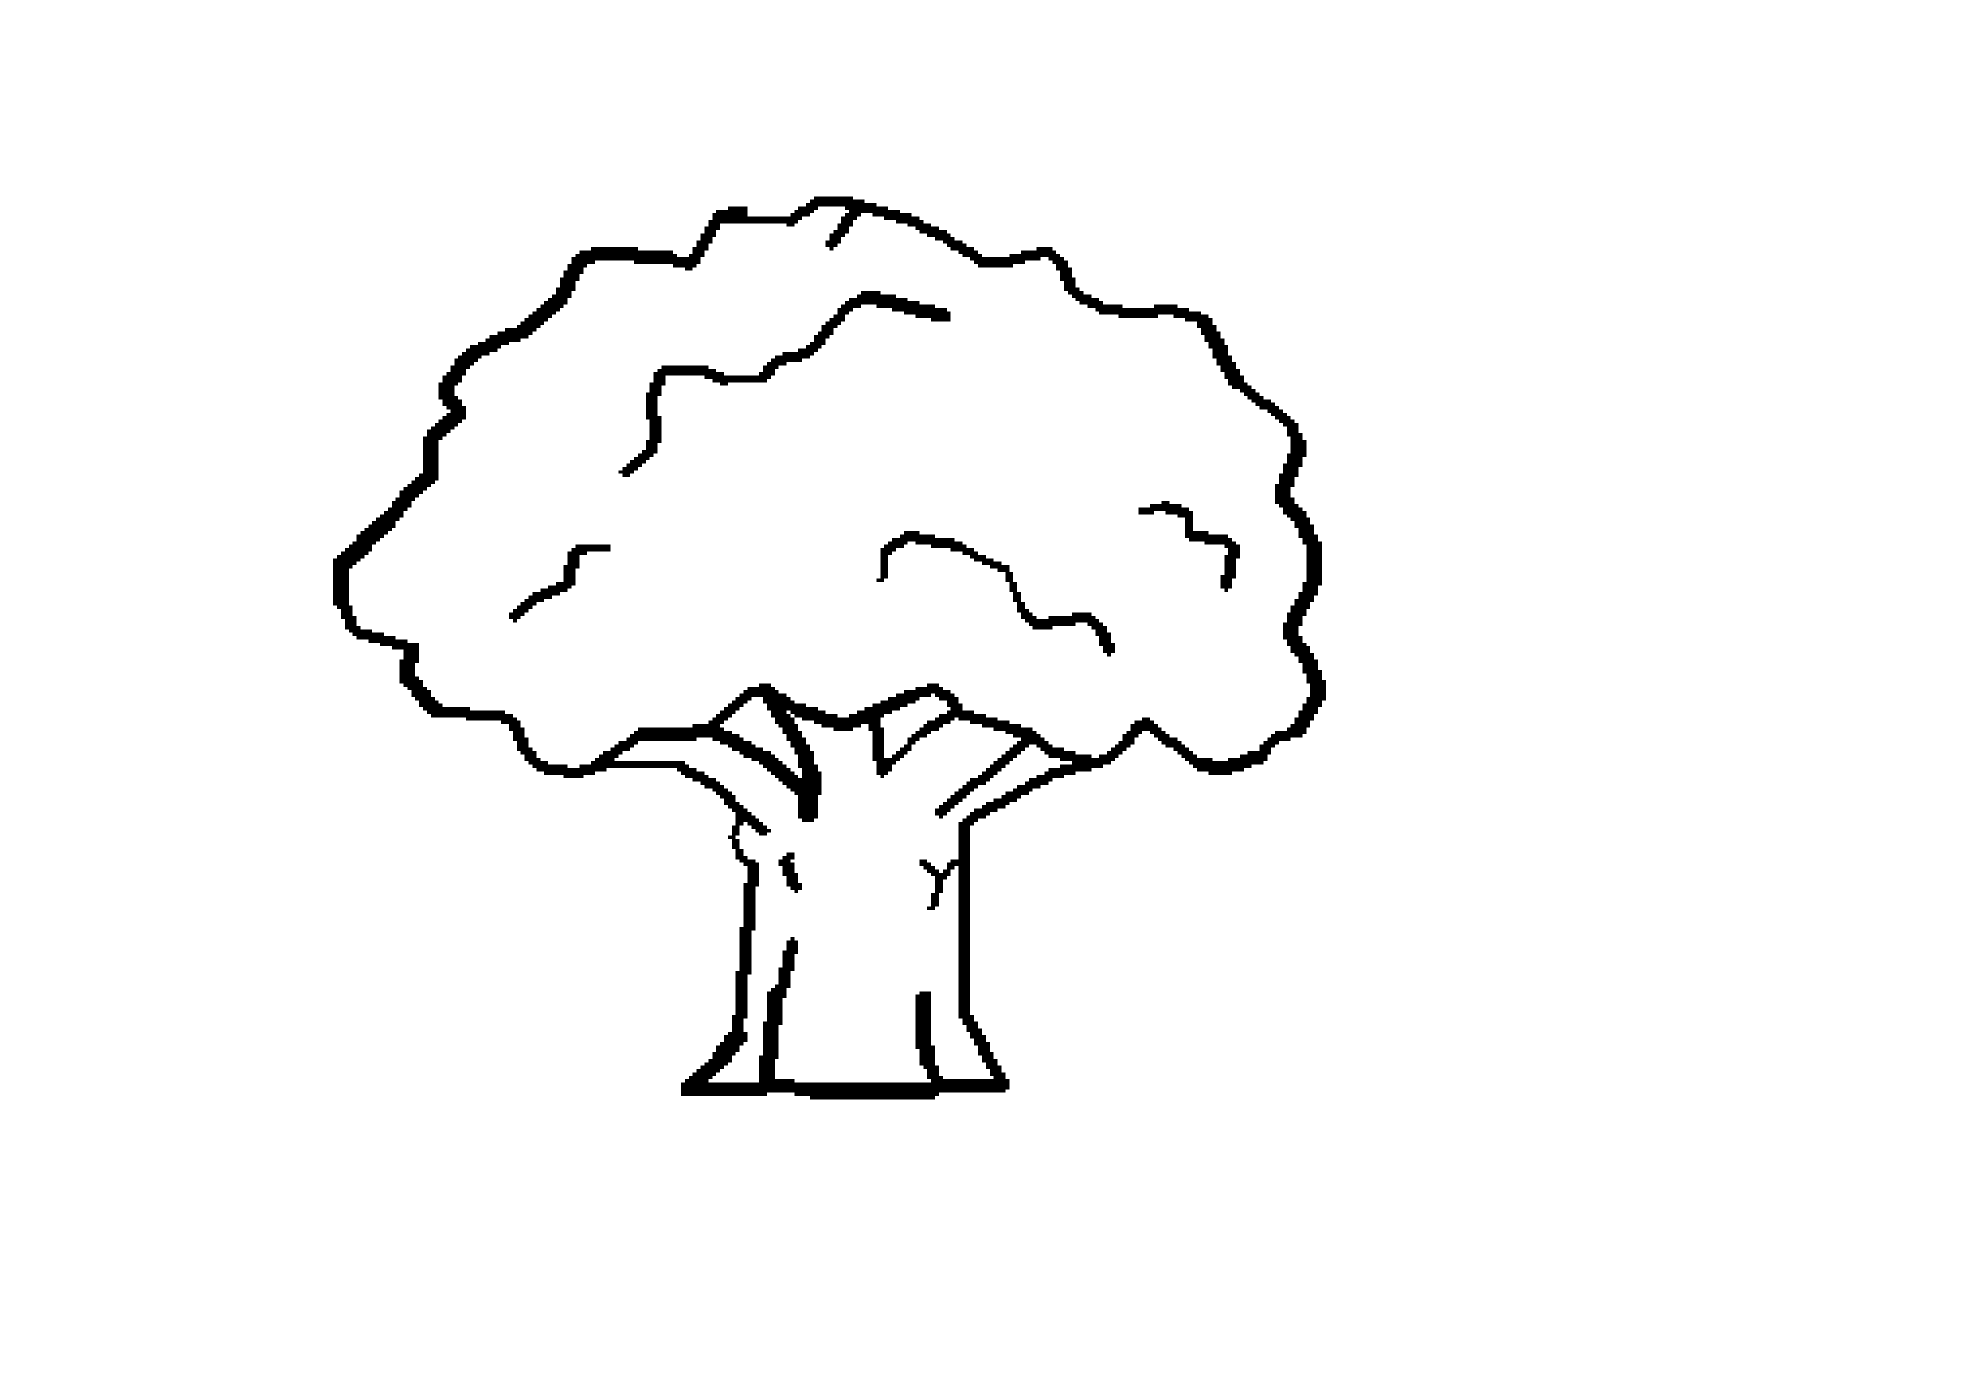 Line Drawing Of Tree : Tree line art cliparts